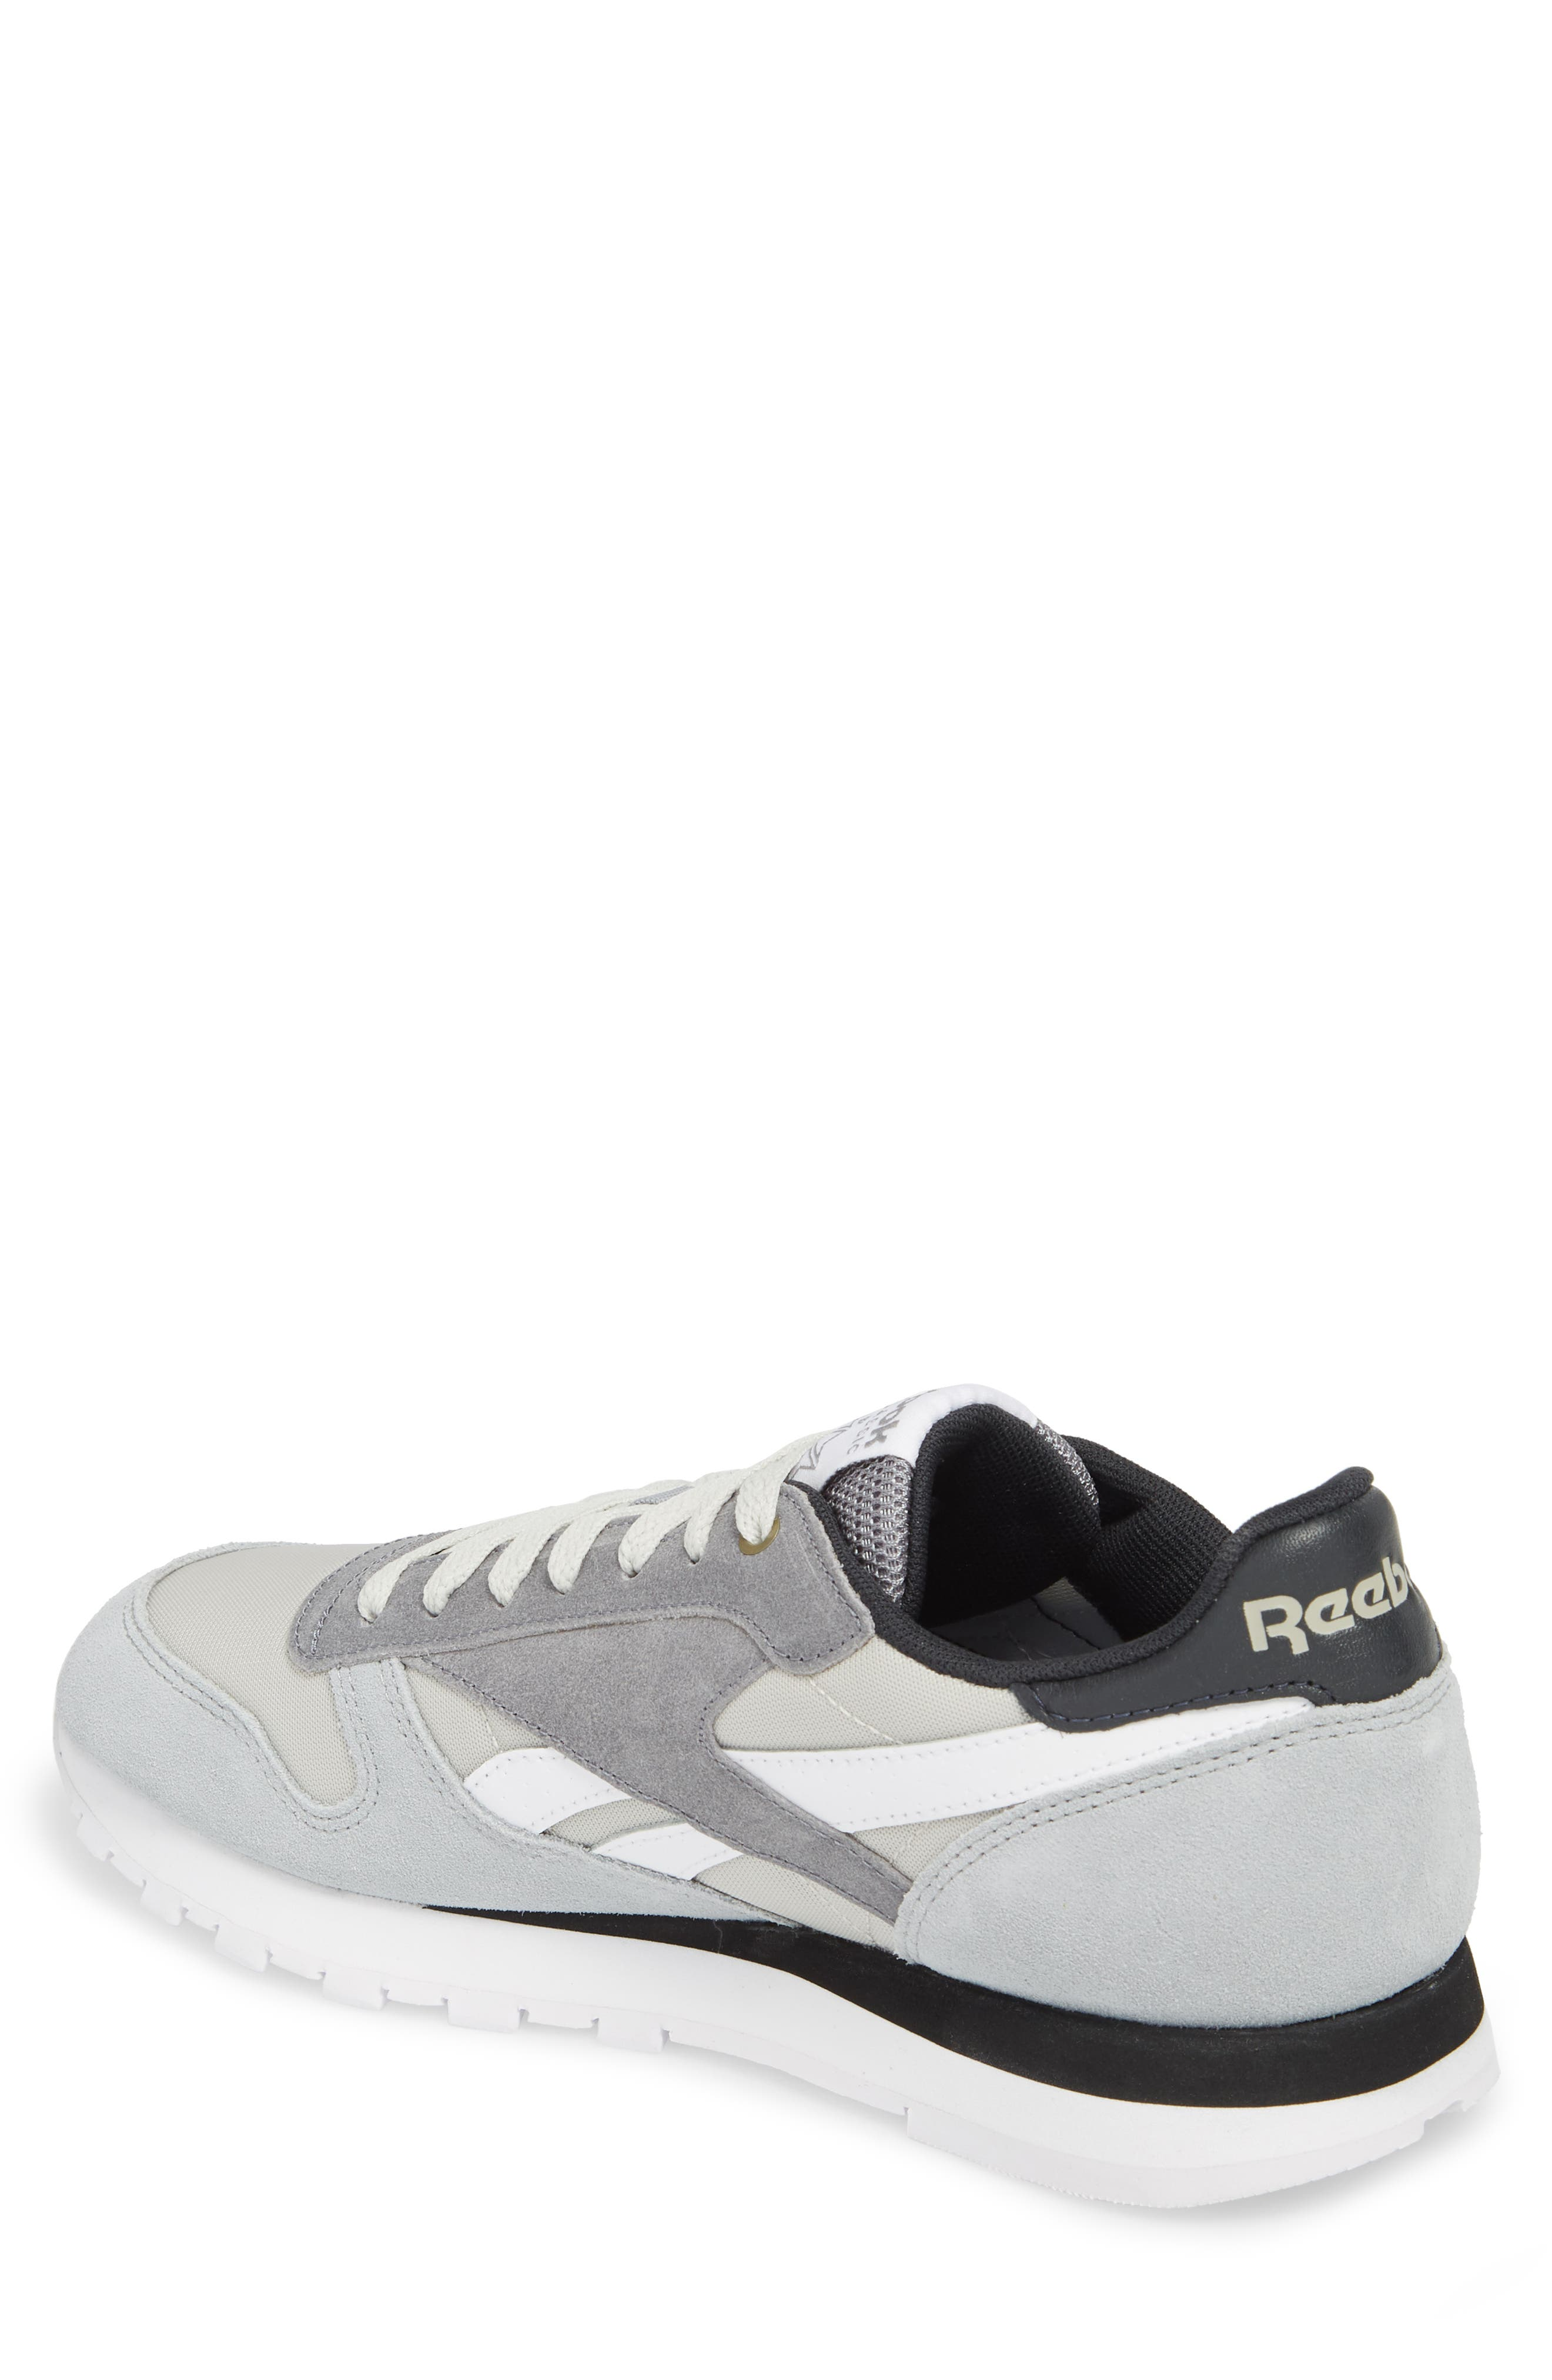 Classic Leather MCCS Sneaker,                             Alternate thumbnail 2, color,                             Grey/ White